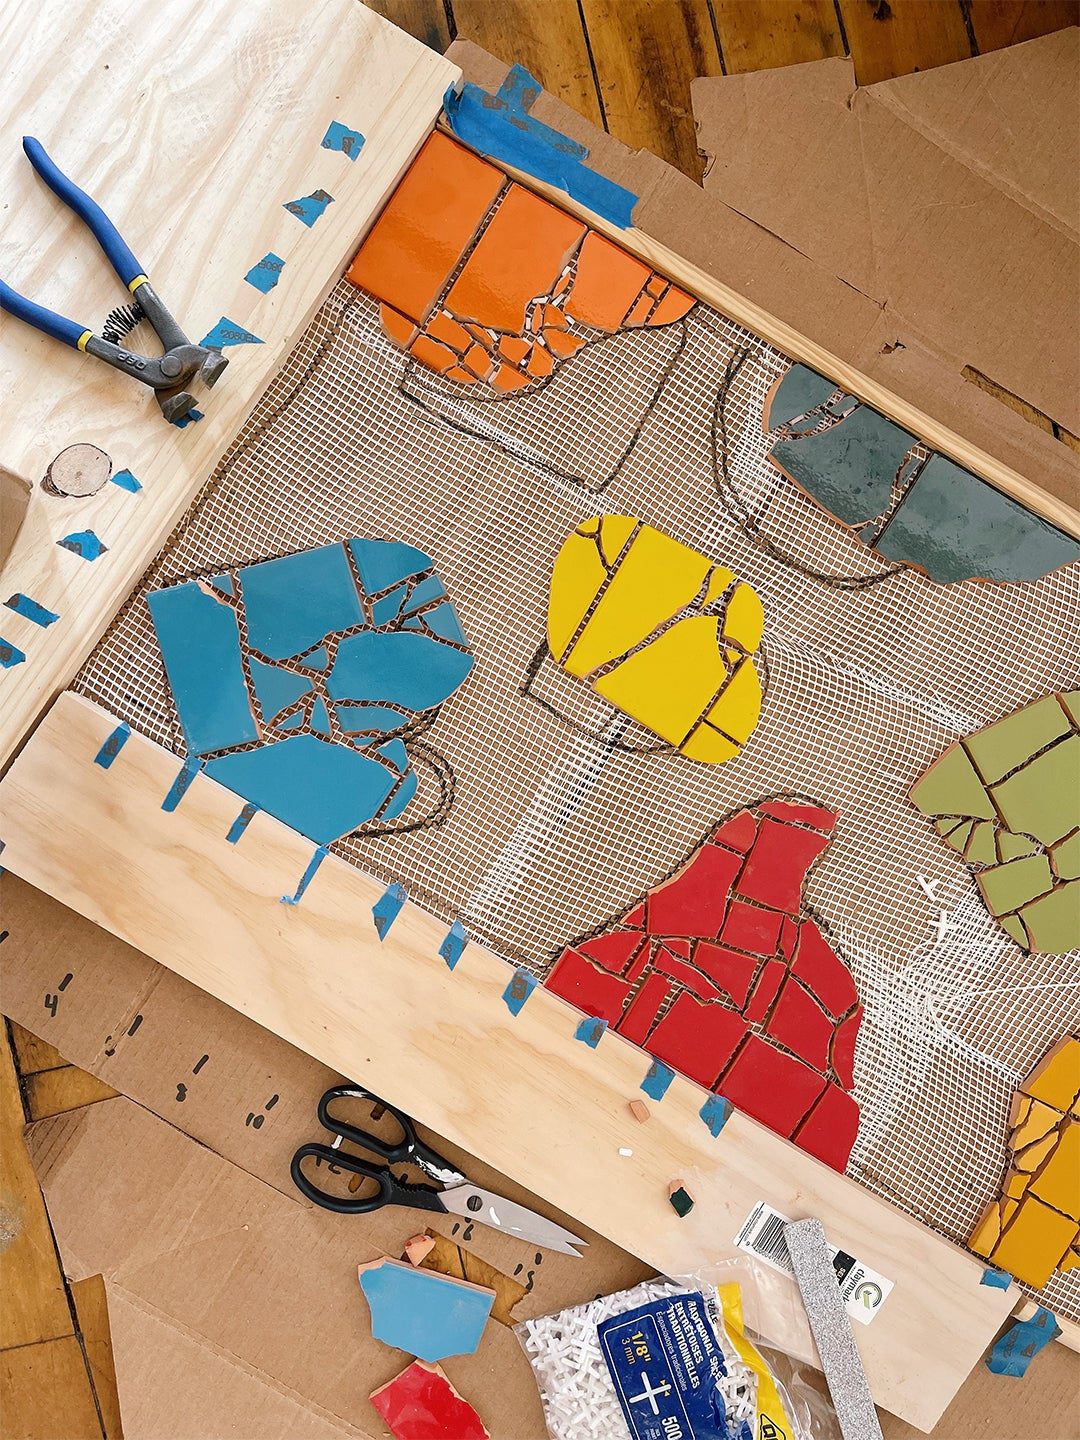 mapping out tile pieces